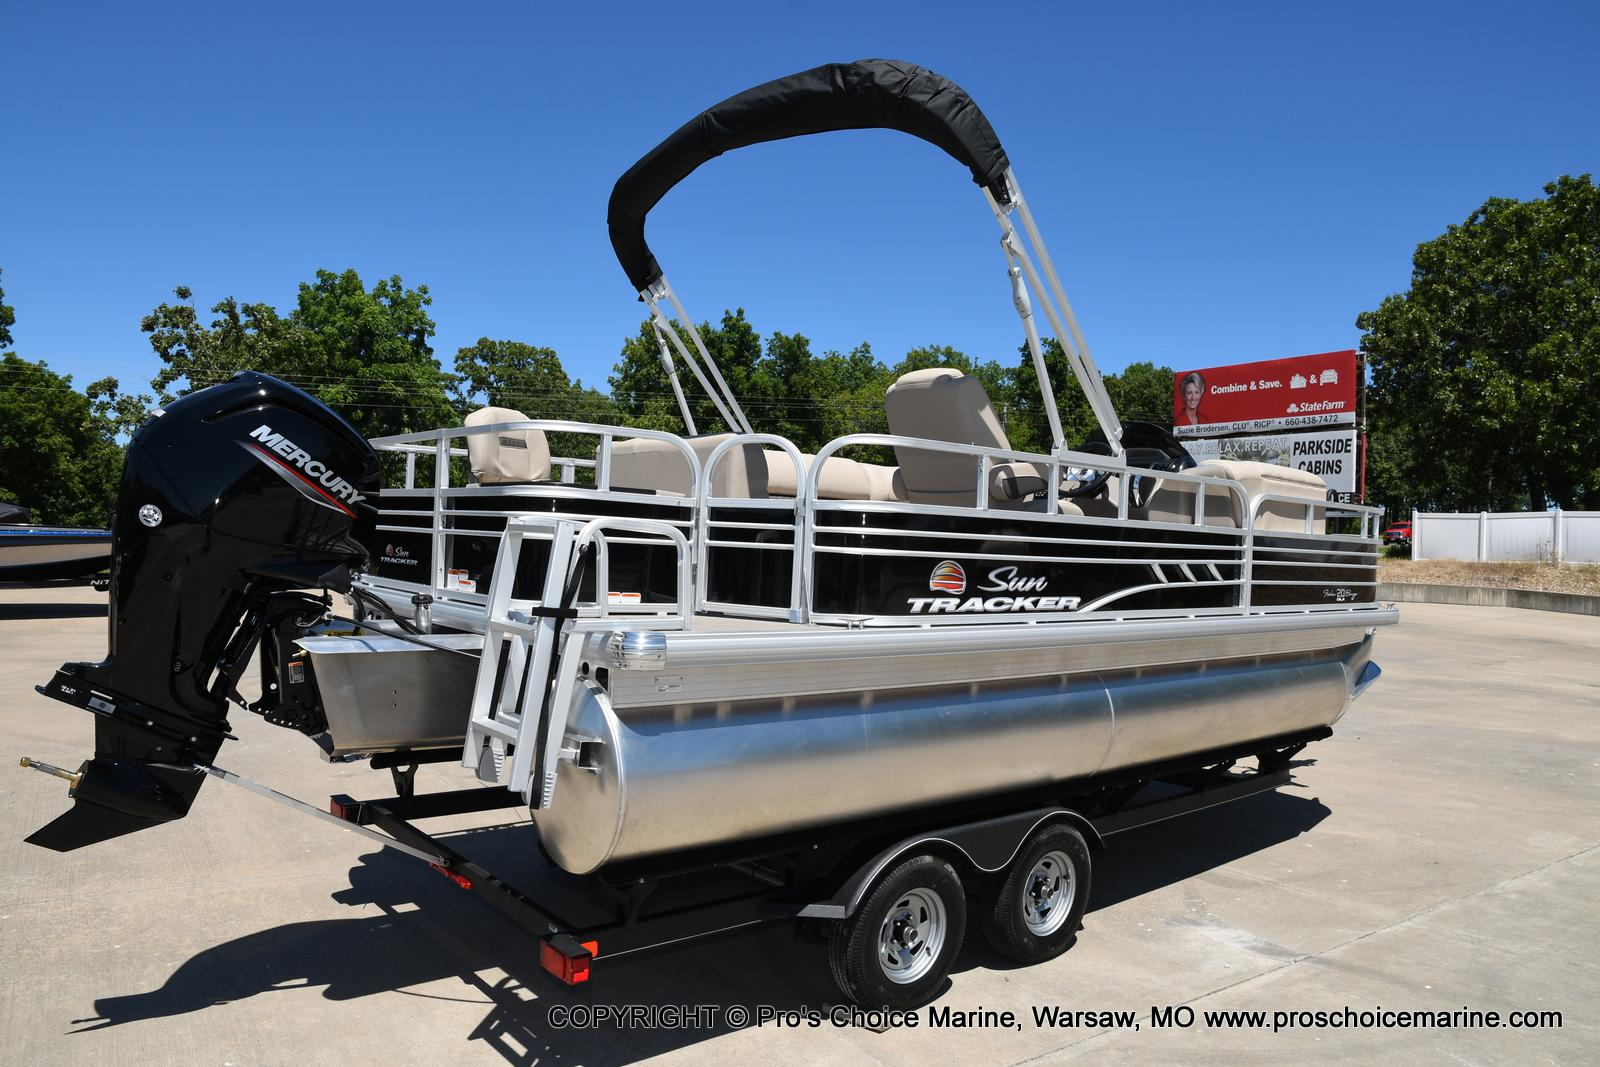 2021 Sun Tracker boat for sale, model of the boat is Fishin' Barge 20 DLX & Image # 37 of 50